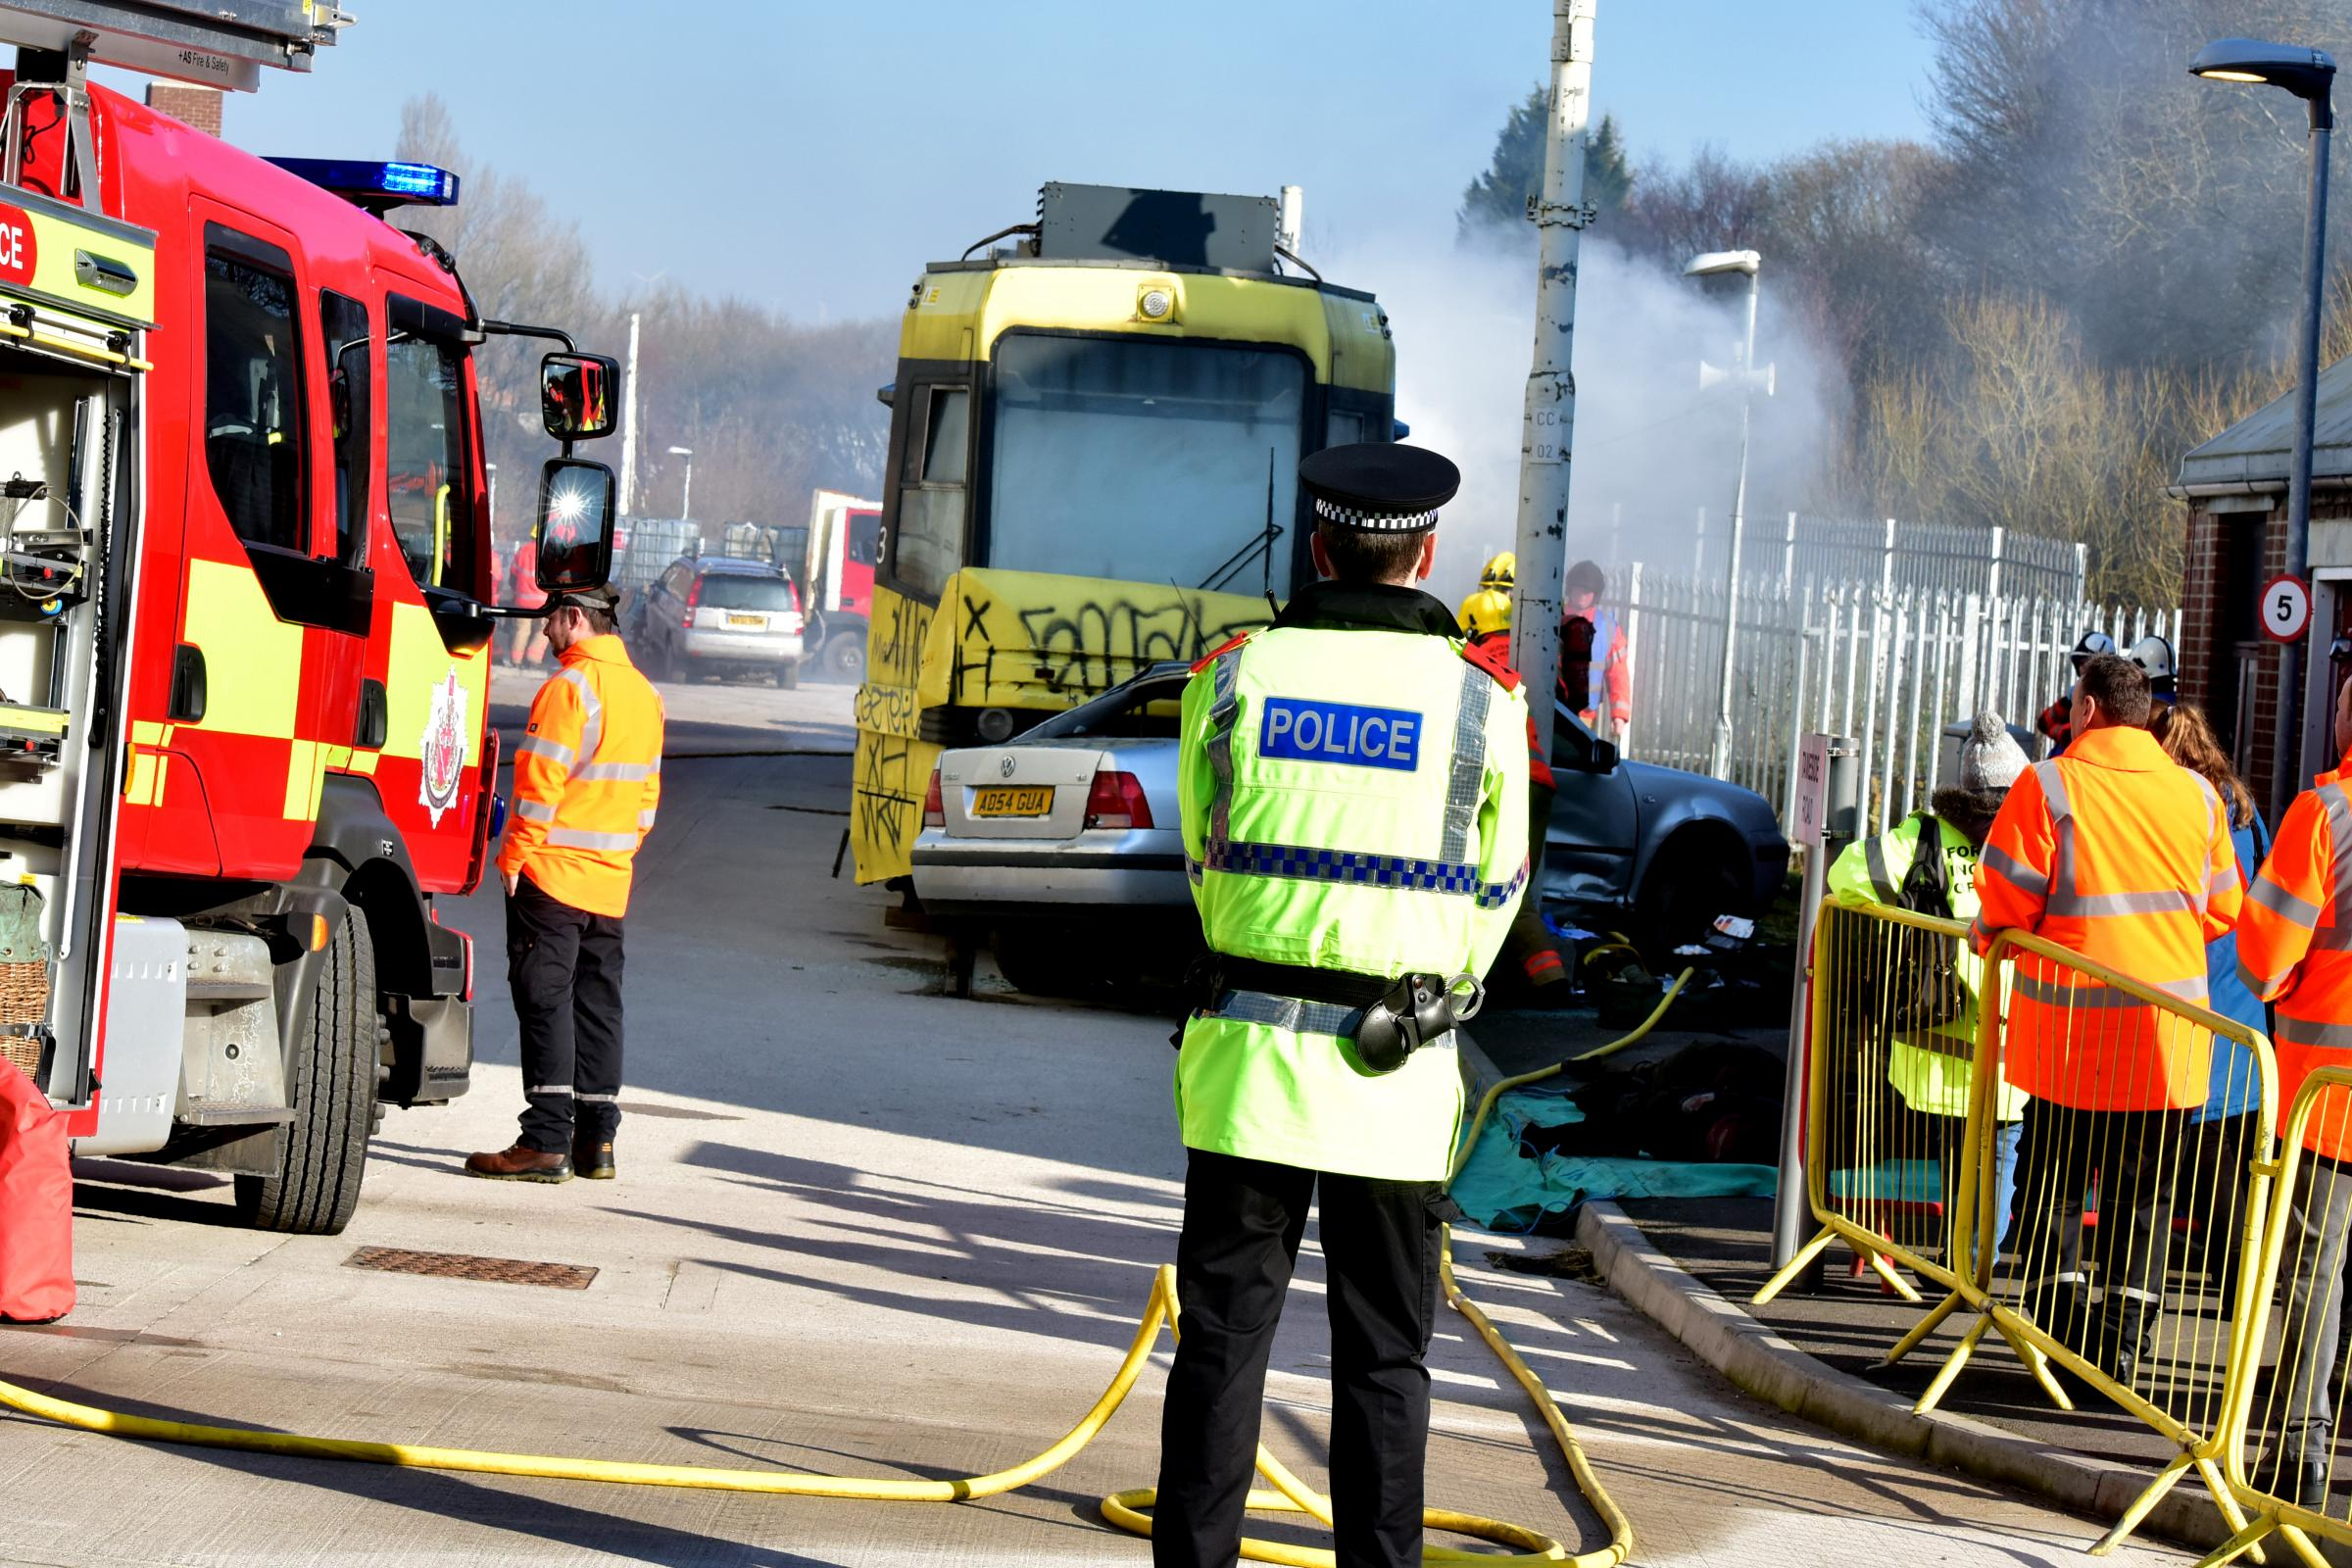 Terror on the trams as emergency services respond in live training exercise